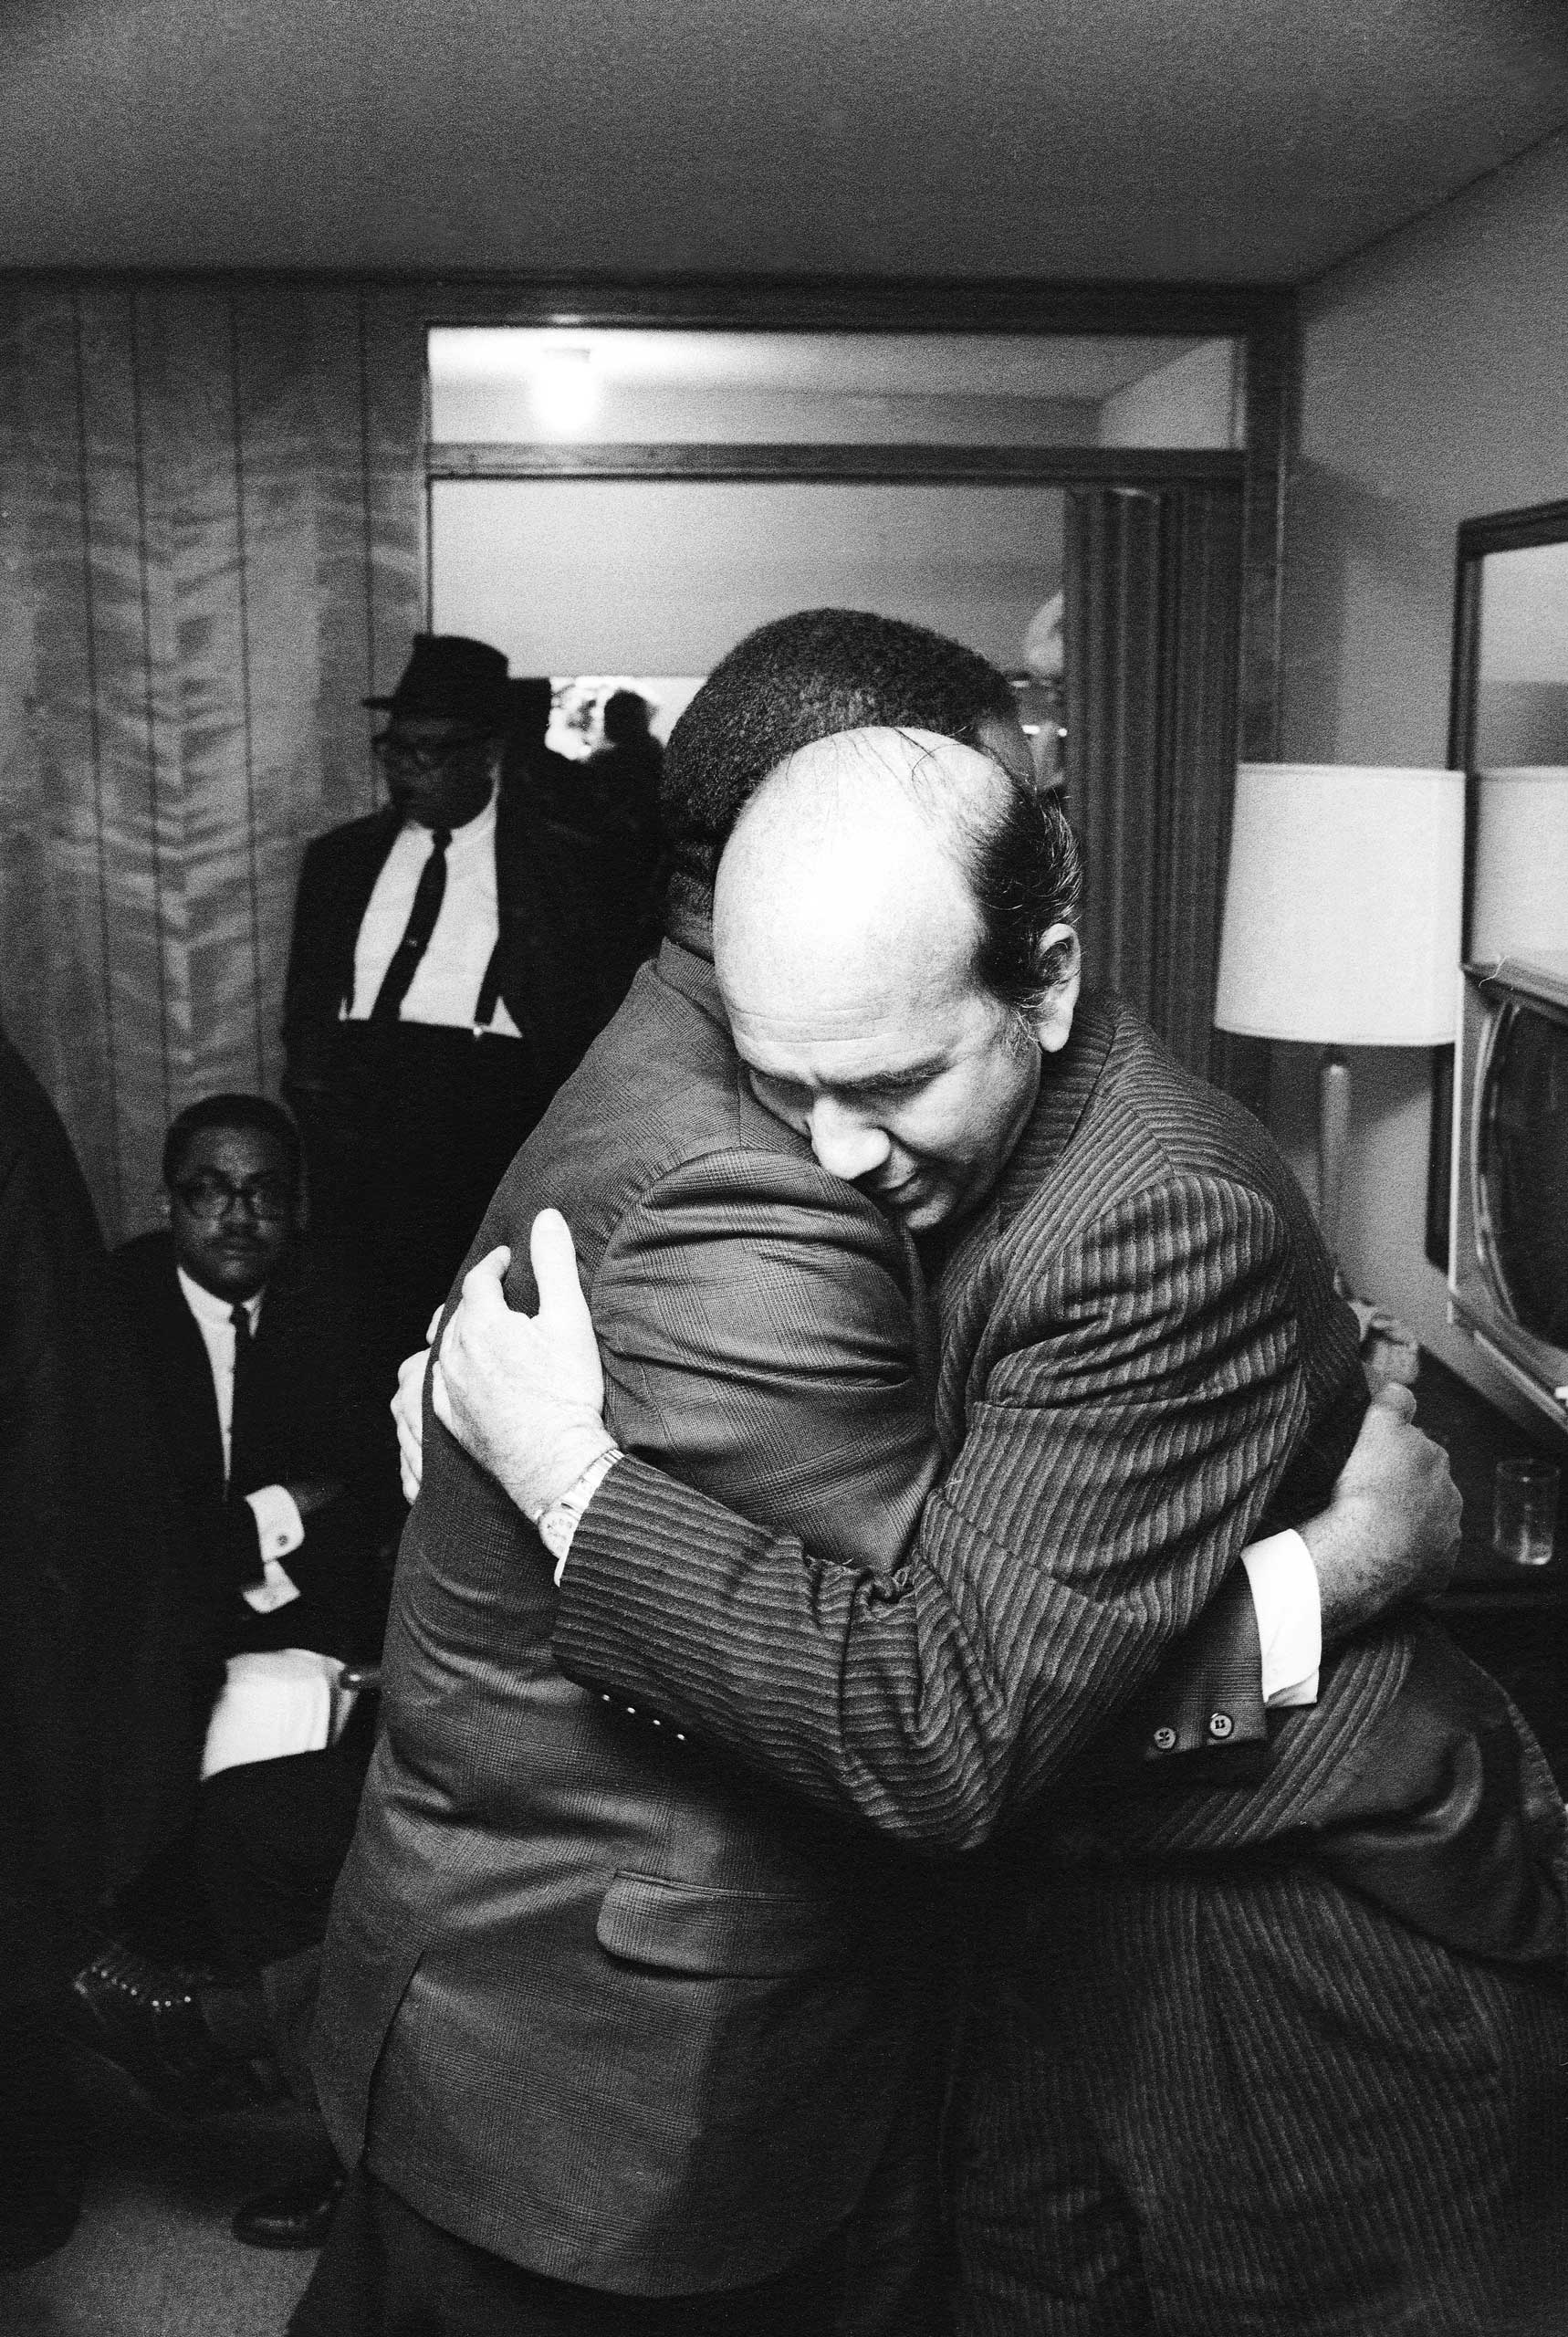 """<b>Not published in LIFE.</b> Ralph Abernathy and Will D. Campbell, a long-time friend and civil rights activist, embrace in Dr. King's room. """"I was documenting a momentous event,"""" Groskinsky told LIFE.com, """"and I thought that at any time I was going to be asked to leave, so I did what I could as quickly as I could."""""""